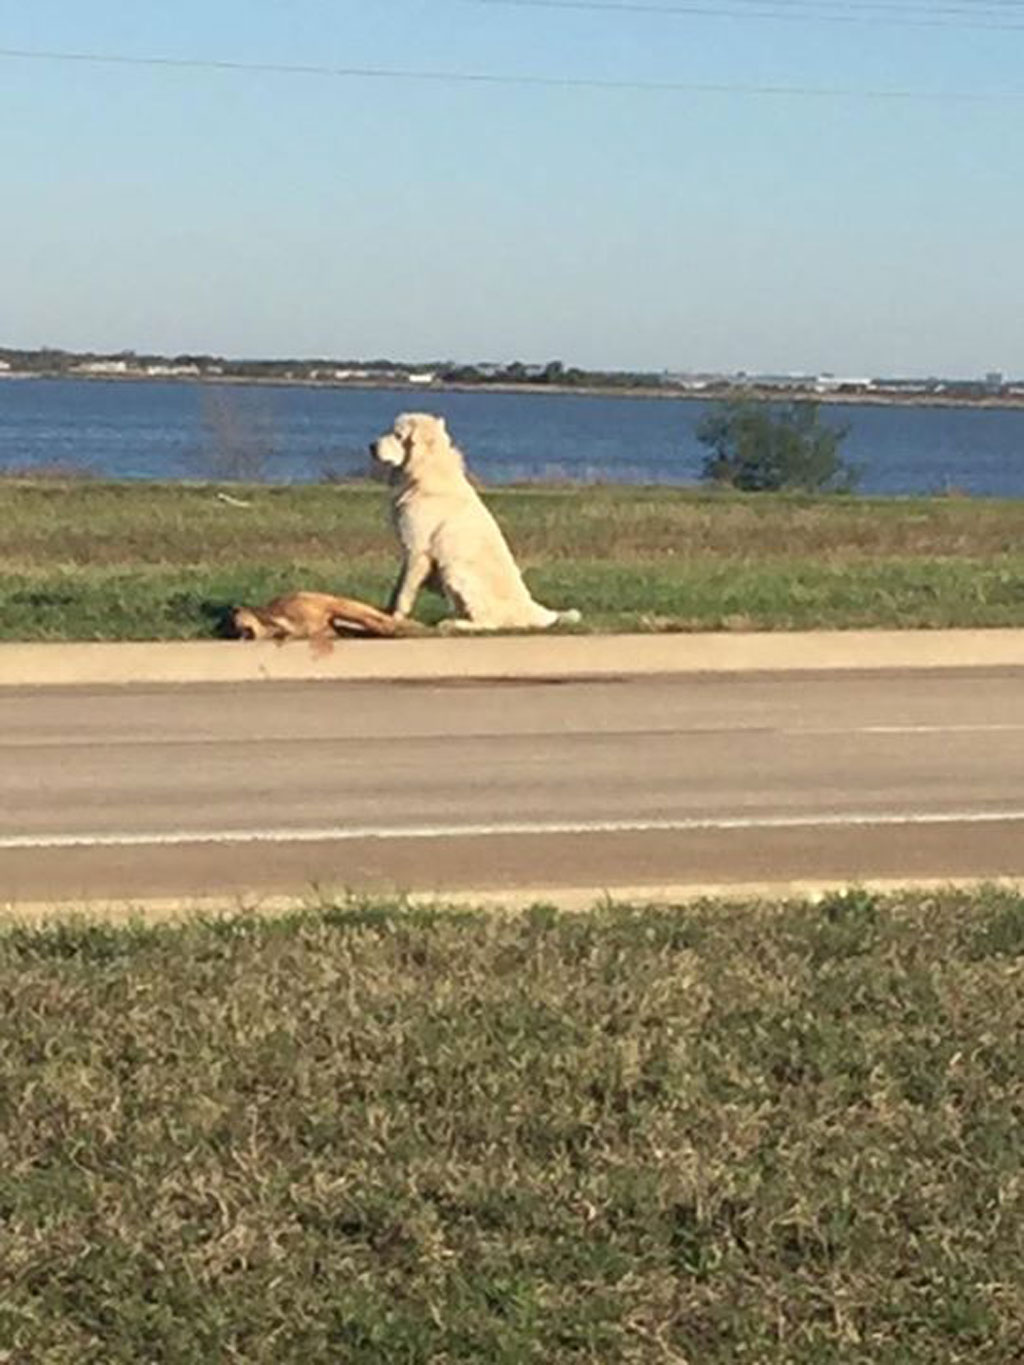 Loyal dog keeps watch over friend hit by car